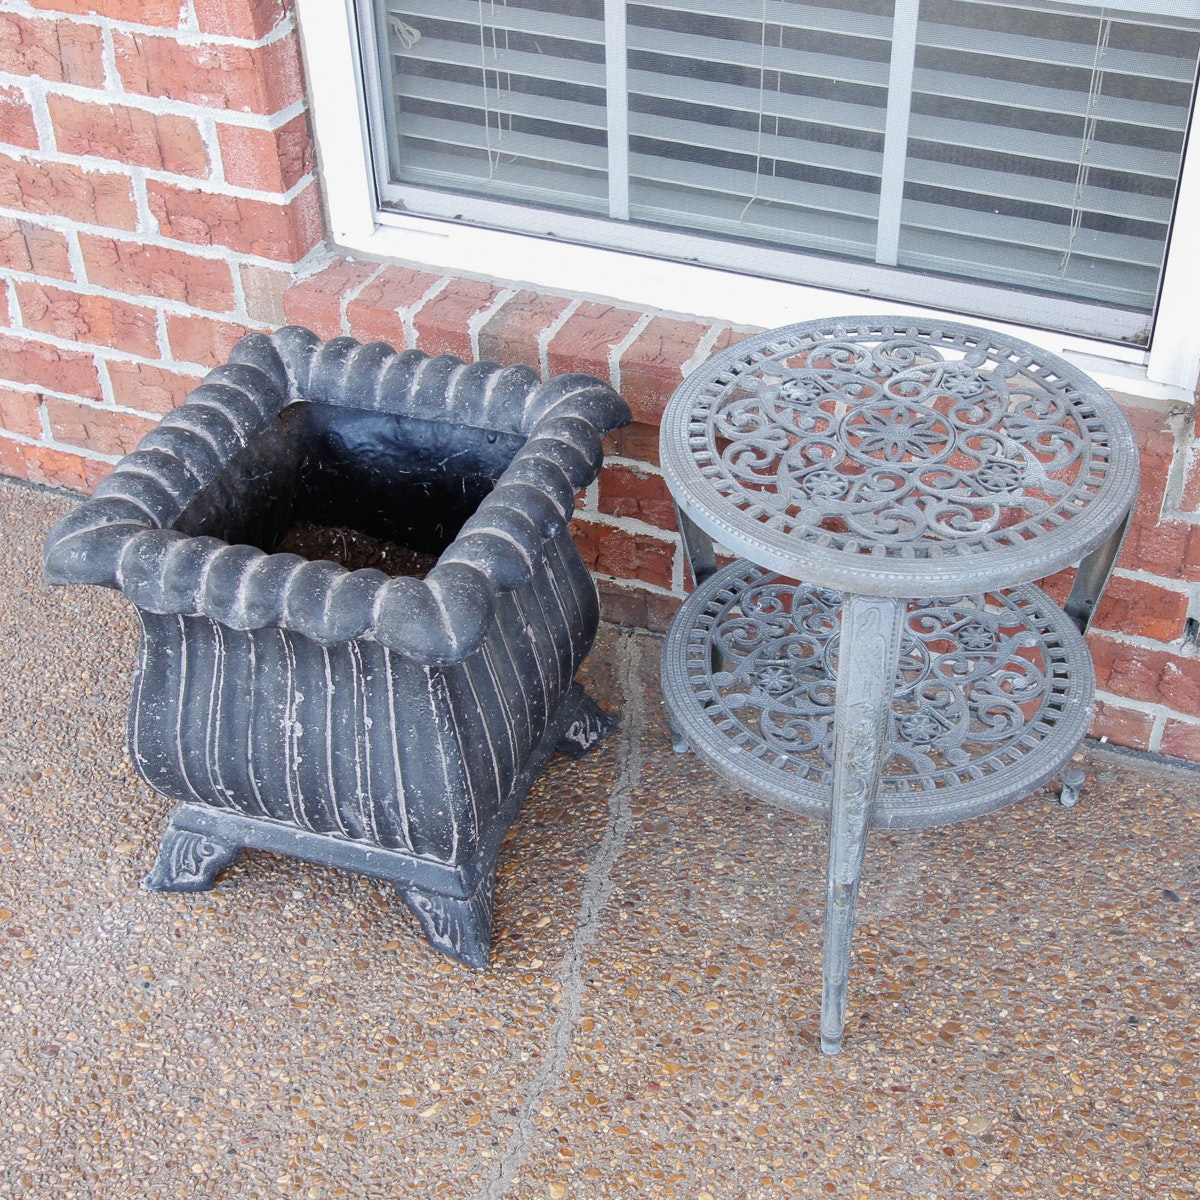 Outdoor Planter and Side Table